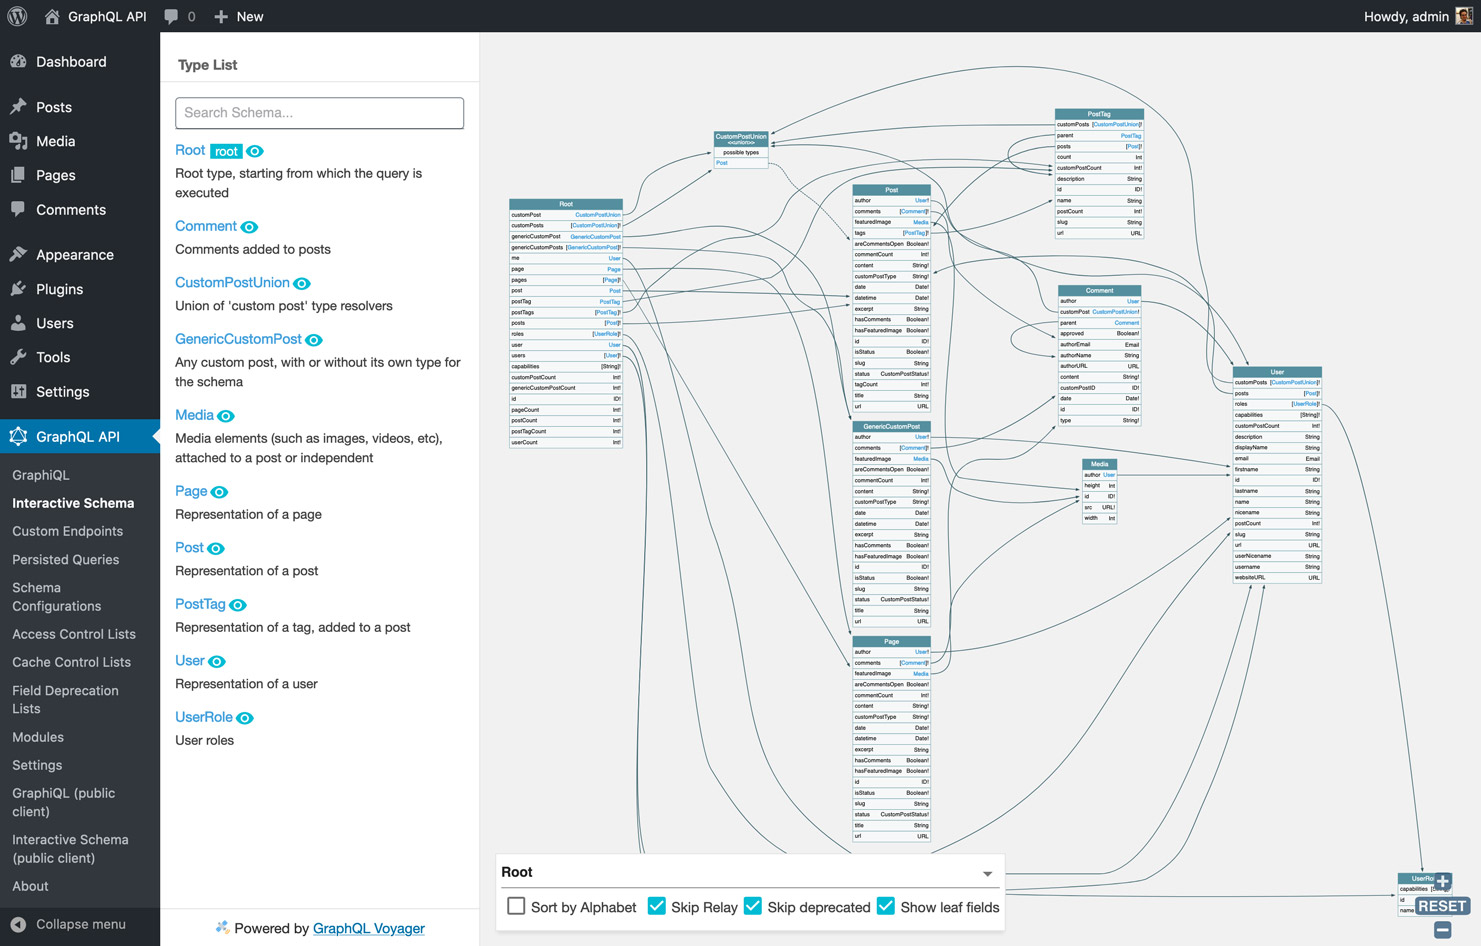 GraphQL Voyager enables us to interact with the schema, as to get a good grasp of how all entities in the application's data model relate to each other.